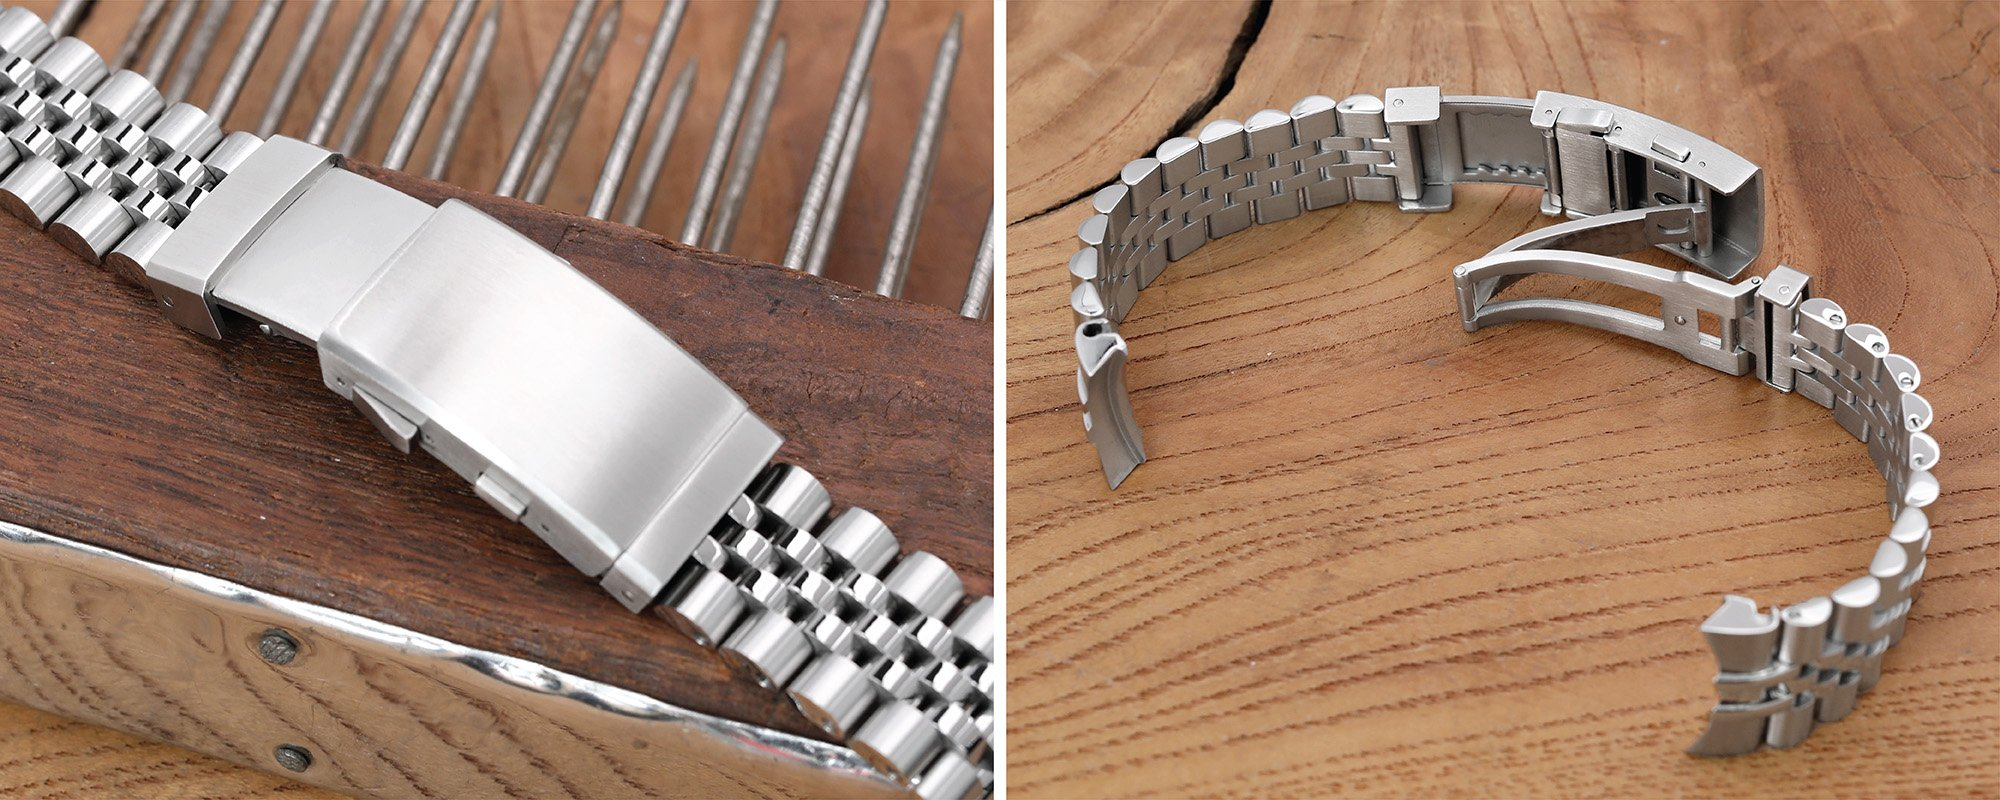 11-Strapcode-watch-bands-8-Ratchet-Buckle-01